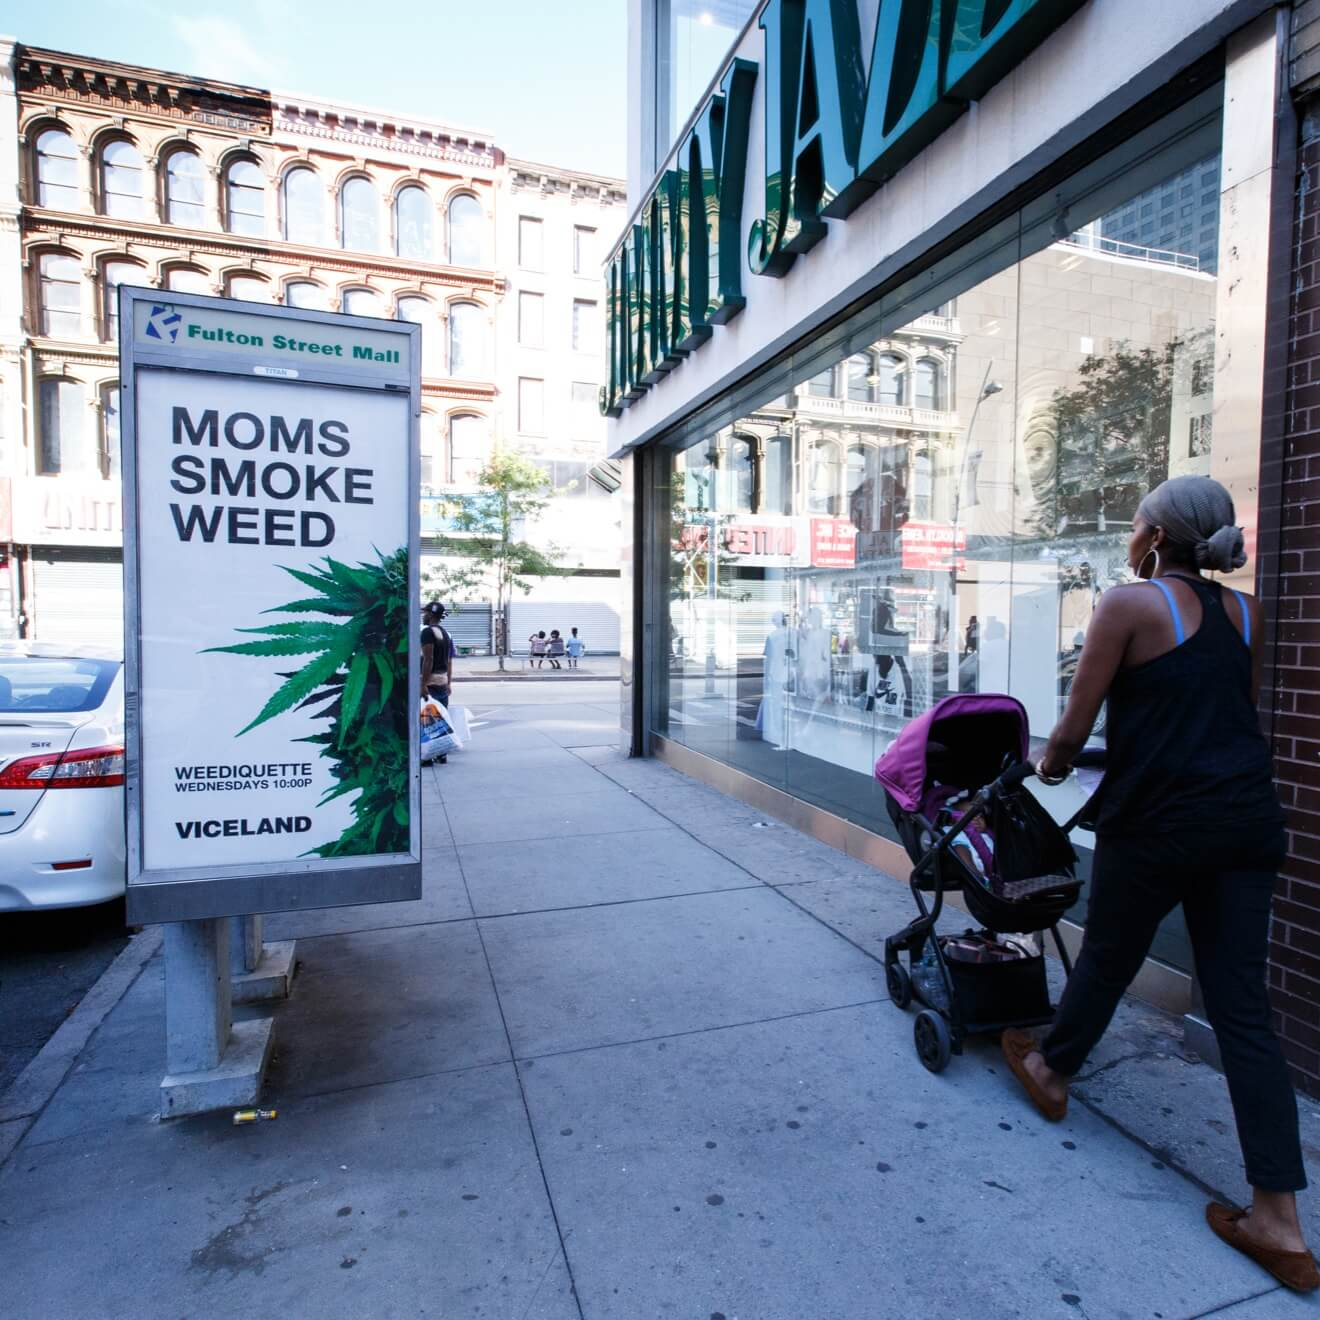 Viceland I Smoke Weed Marketing Campaign Poster